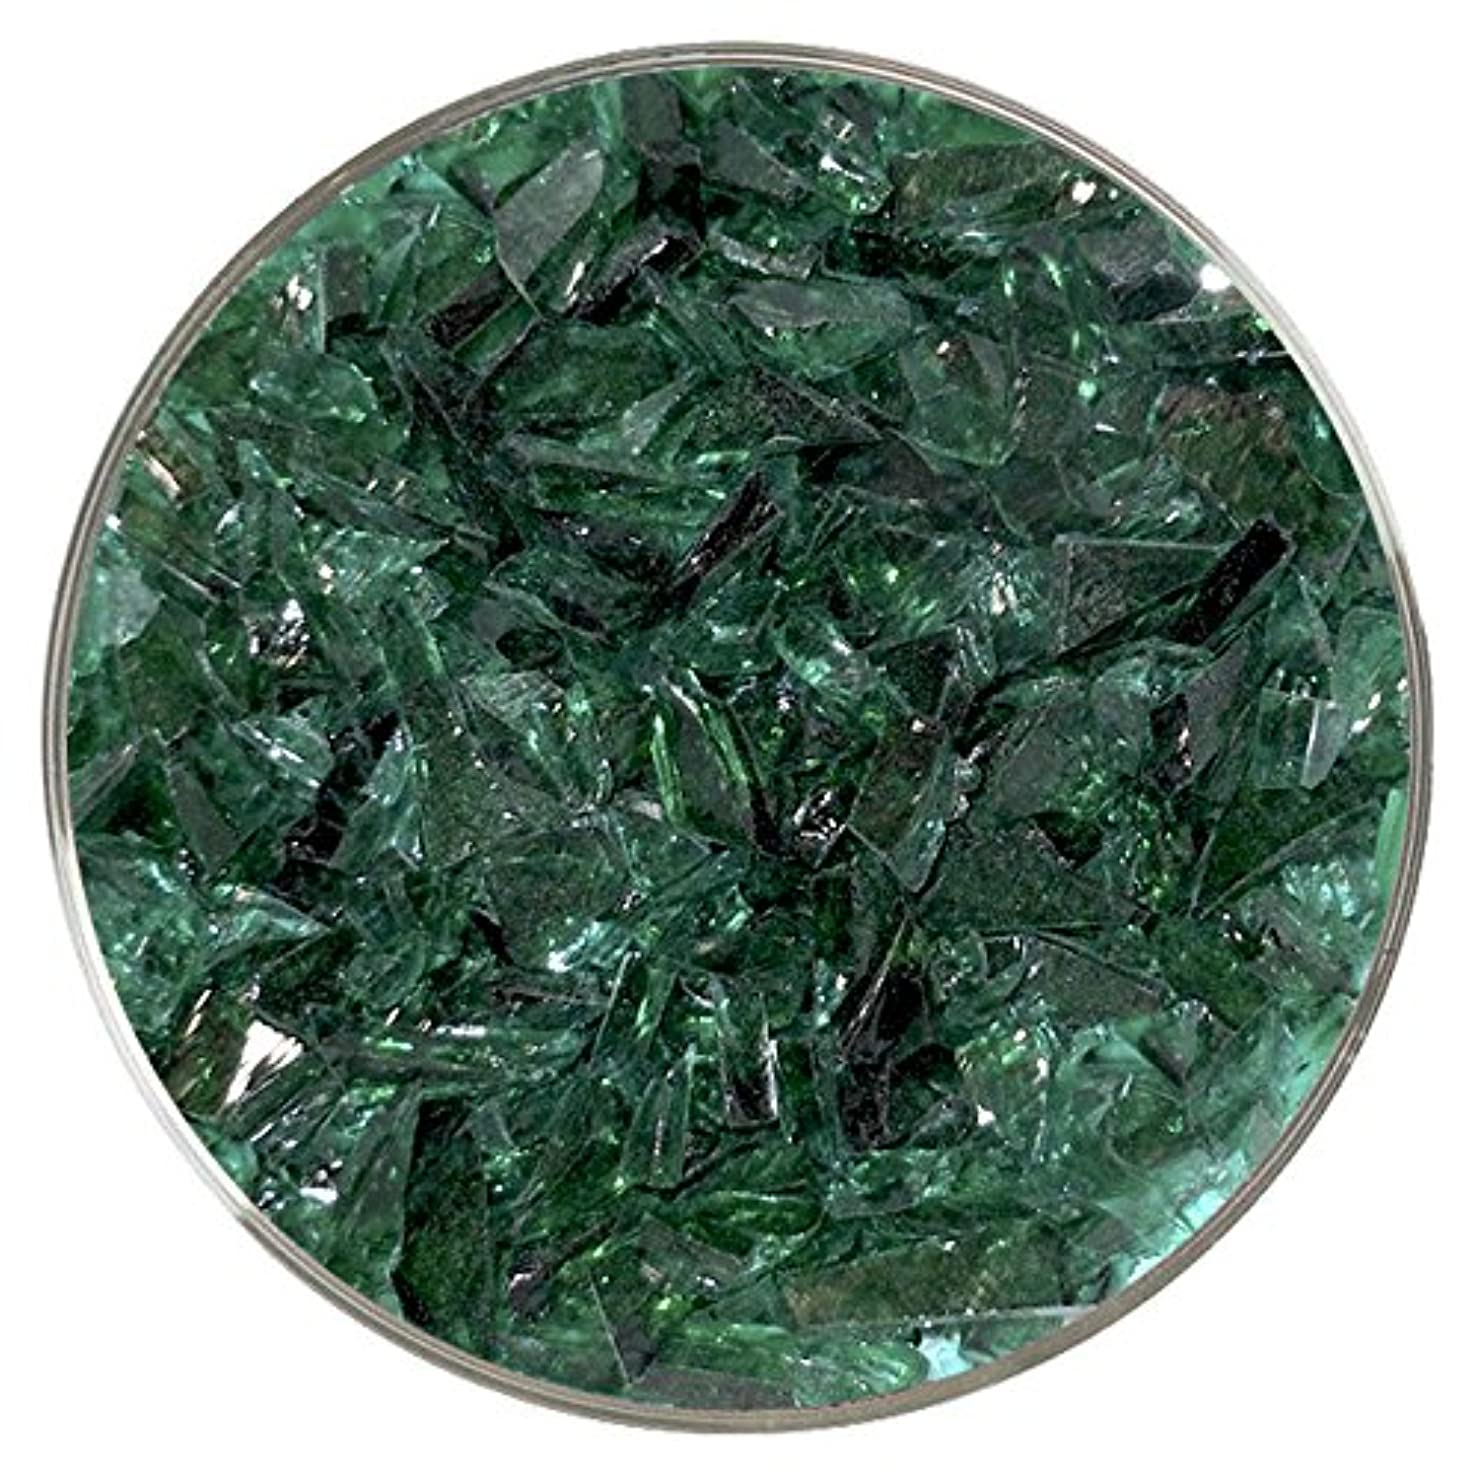 Teal Green Transparent Coarse Frit - 96COE - 4oz - Made from System 96 Glass